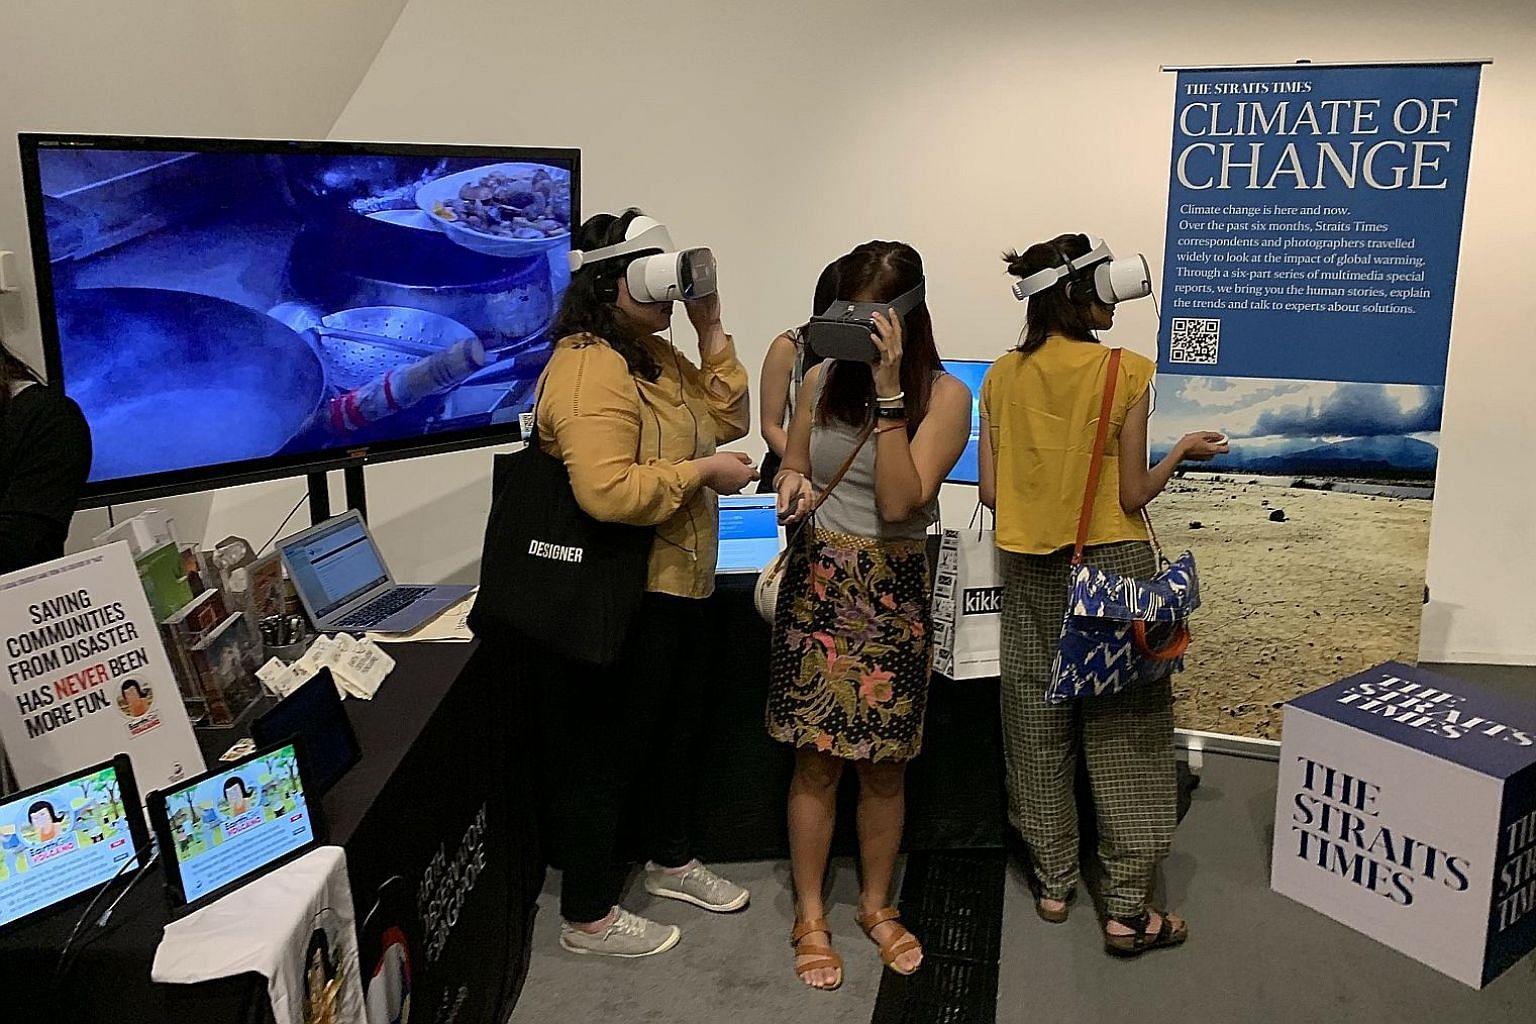 Visitors to The Straits Times' booth at the Singapore Eco-Film Festival can try out ST's VR project, which shows how climate change will affect Singapore, as they take a four-minute journey in 2100, from a river cruise at Boat Quay, to the Merlion Pa